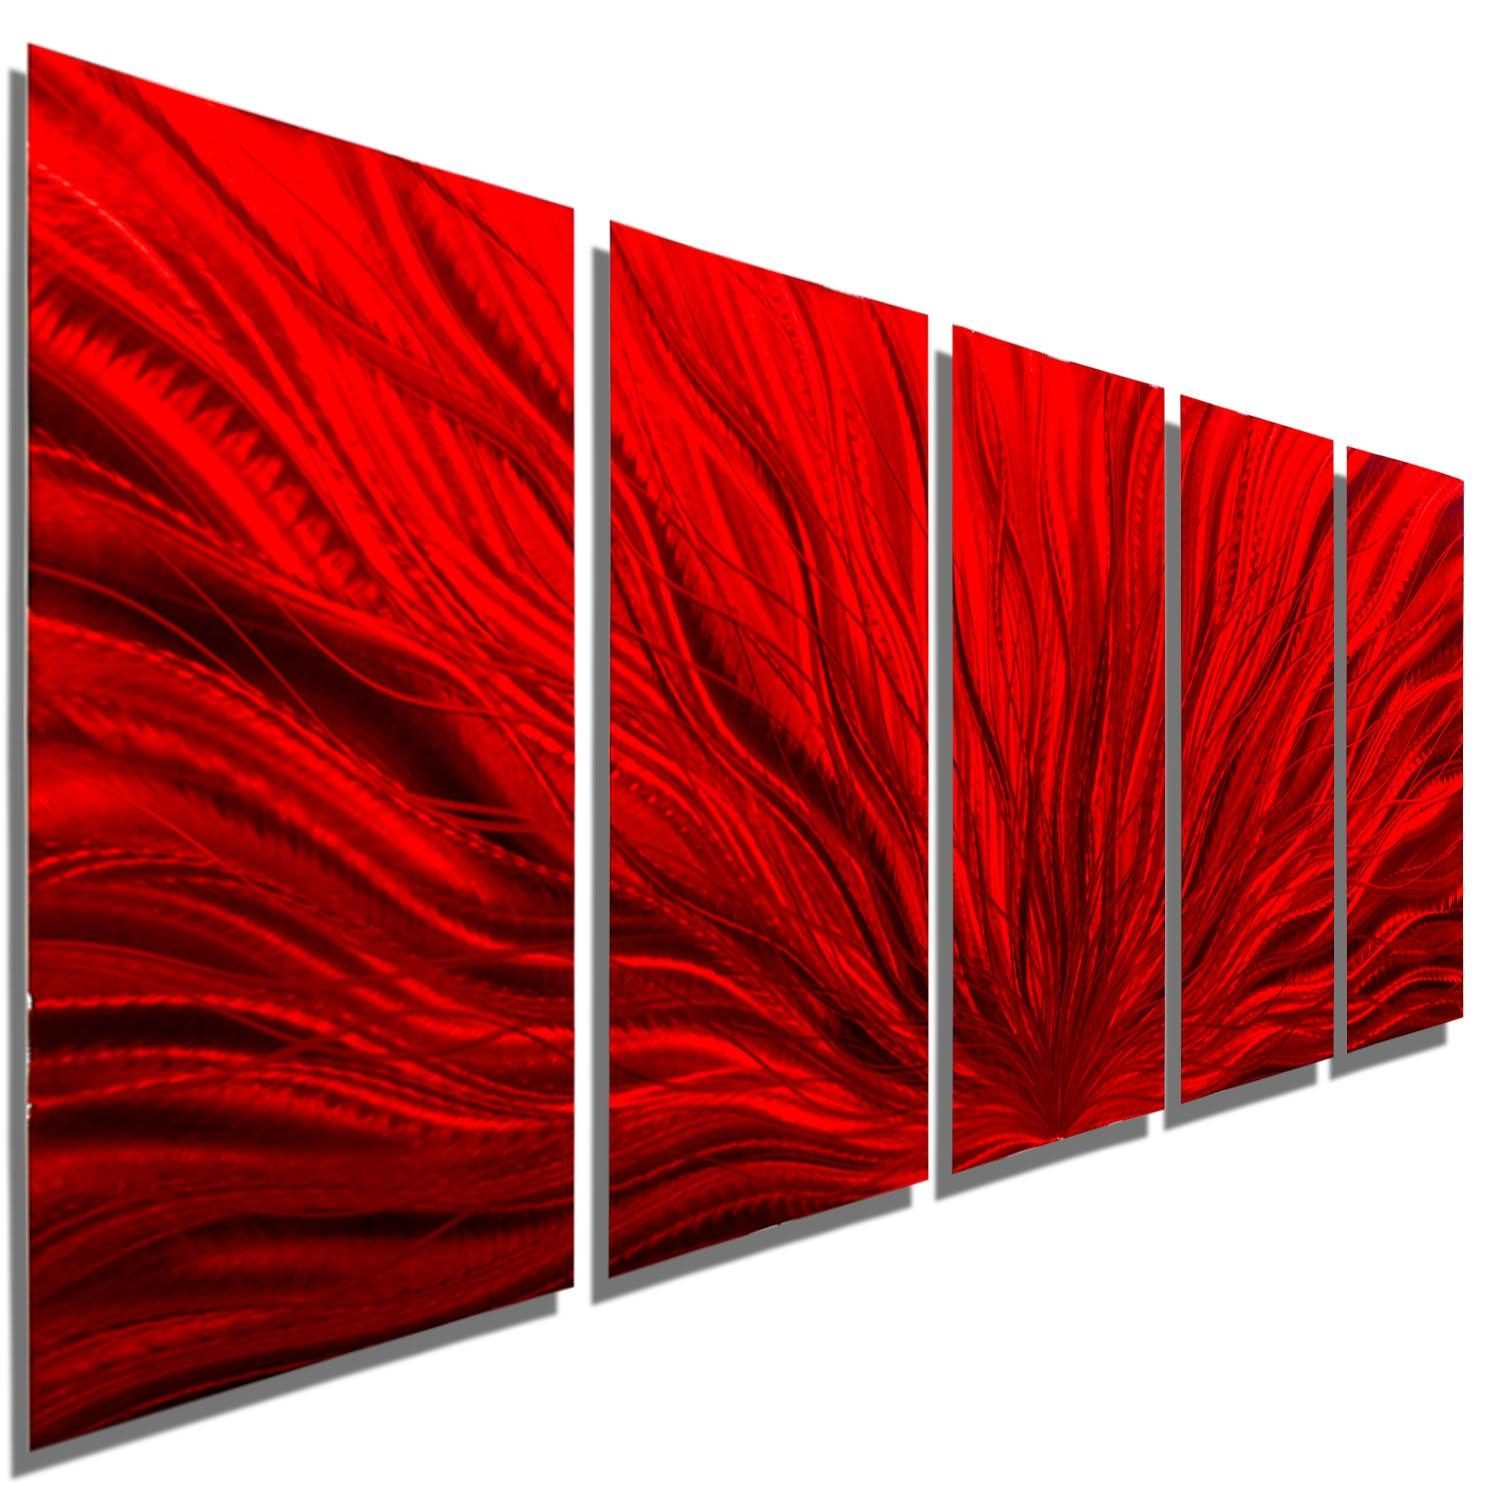 Red Plumage – Extra Large Modern Abstract Metal Wall Artjon Throughout Large Abstract Metal Wall Art (Image 17 of 20)